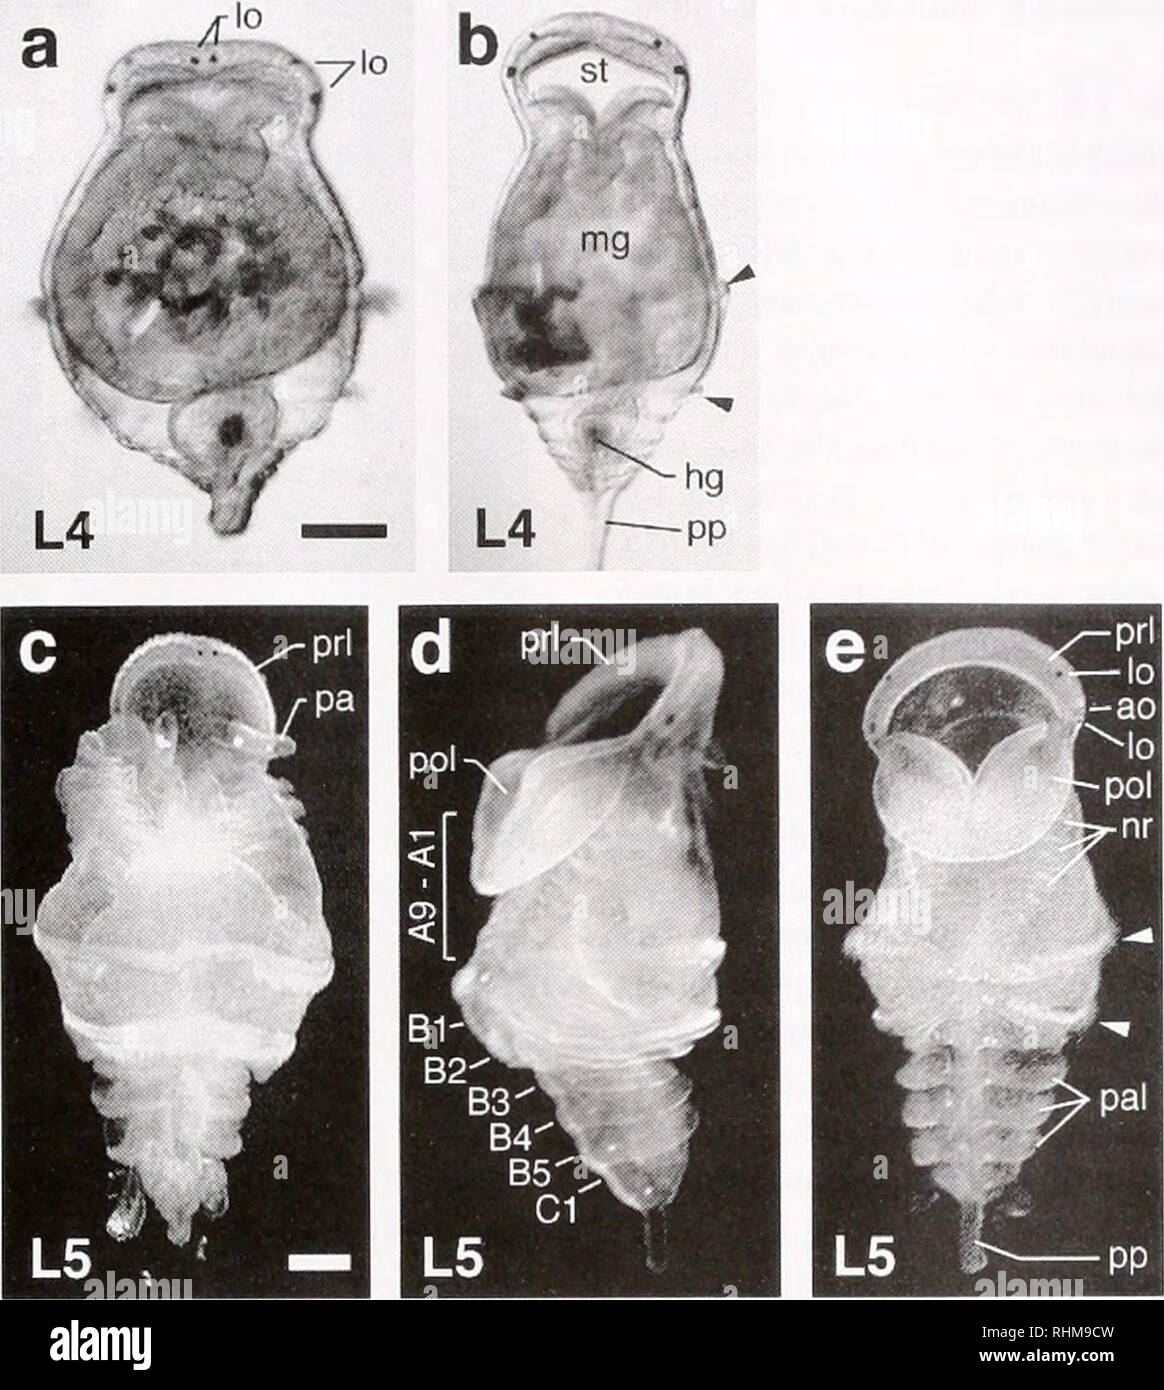 . The Biological bulletin. Biology; Zoology; Biology; Marine Biology. CHAETOPTERUS LARVAL ONTOGENY 325. Figure 5. Larvae, stages L4 and L5. Anterior and posterior mesotrochs are marked by arrowheads, (a. h) Stage L4 larvae at 30 days in dorsal and ventral views, (c-e) Stage L5 larvae at 60 days in dorsal, lateral, and ventral views respectively. The locations of adult setiger rudiments are labeled in (d). Note the appearance of the red adult ocelli, visible in (e) along with the persistent larval ocelli, ao, adult ocellus; hg. hindgut; lo, larval ocellus; mg, midgut; nr. notopodial rudiment of - Stock Image